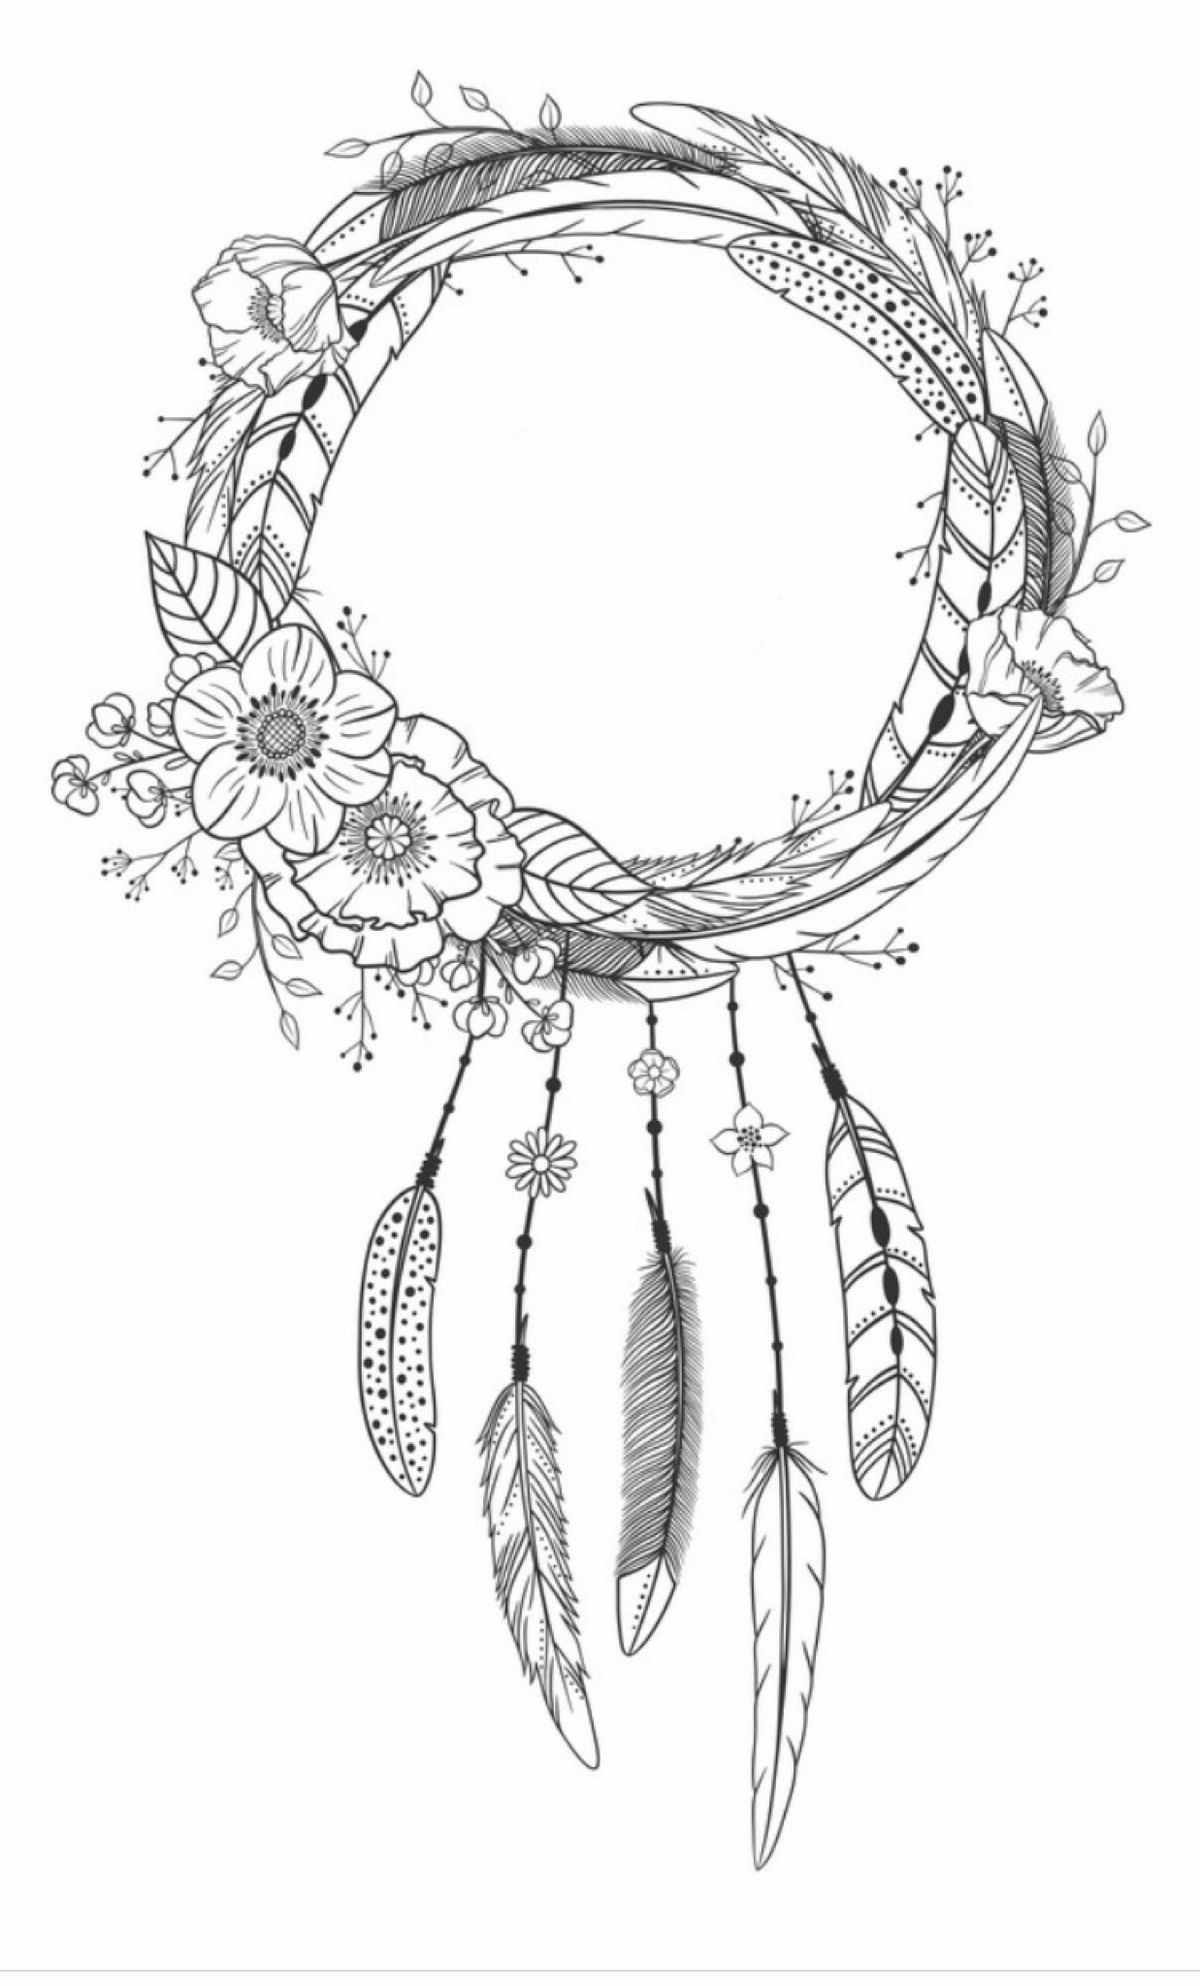 47+ Free printable coloring pages for adults only dream catchers ideas in 2021